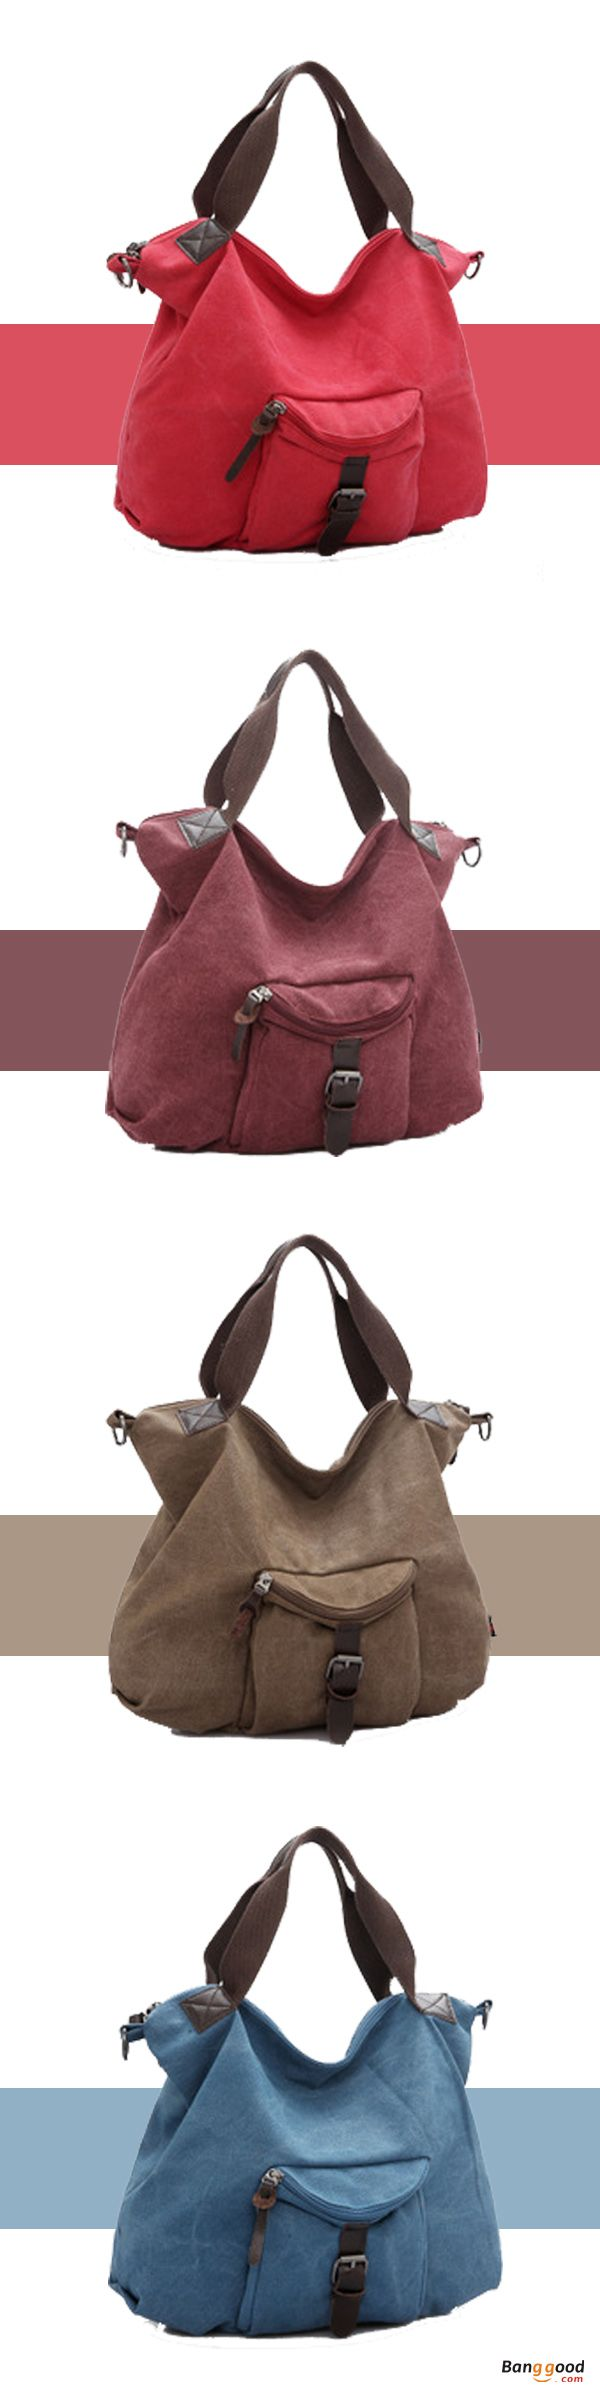 US$27.99+Free shipping. Canvas Bags, Shoulder Bags, Crossbody Bags, Casual, Simple, Color: Blue, Brown, Burgundy, Watermelon Red. Shop now~